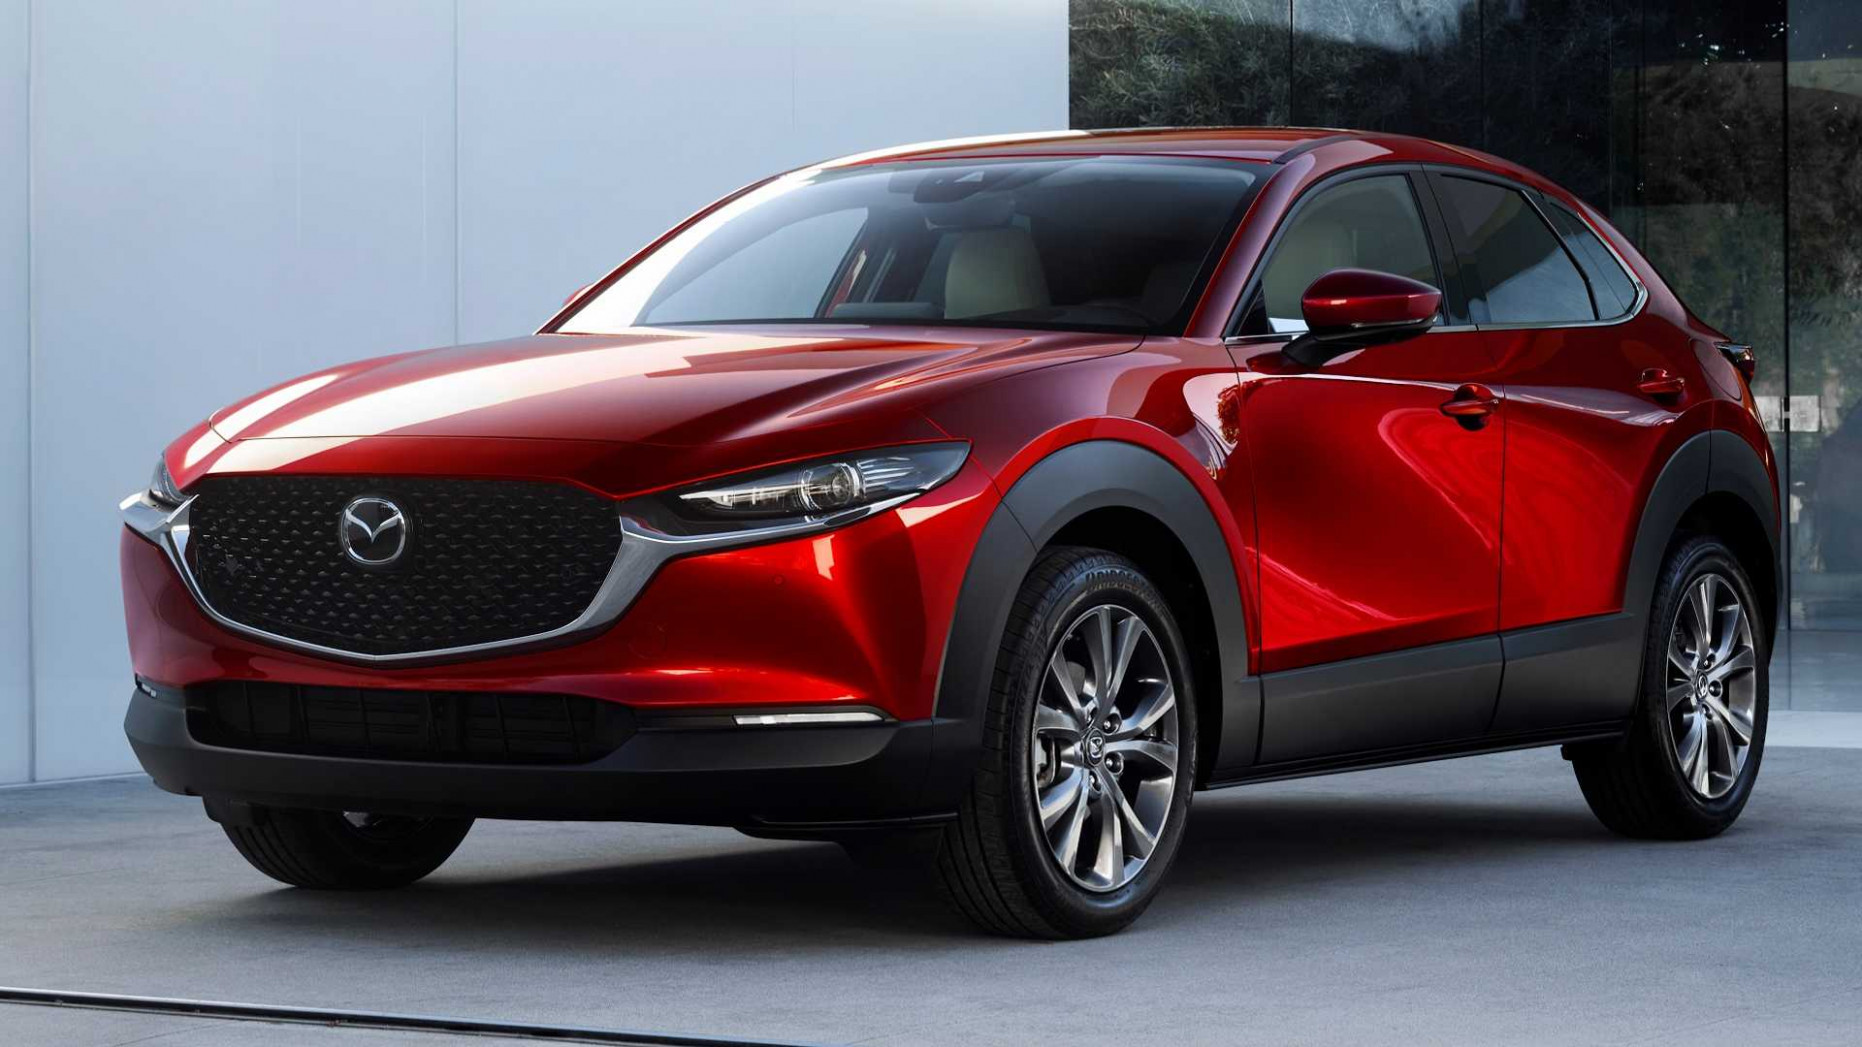 7 Mazda CX-7 Engines For U.S. Possibly Revealed In CARB Filing